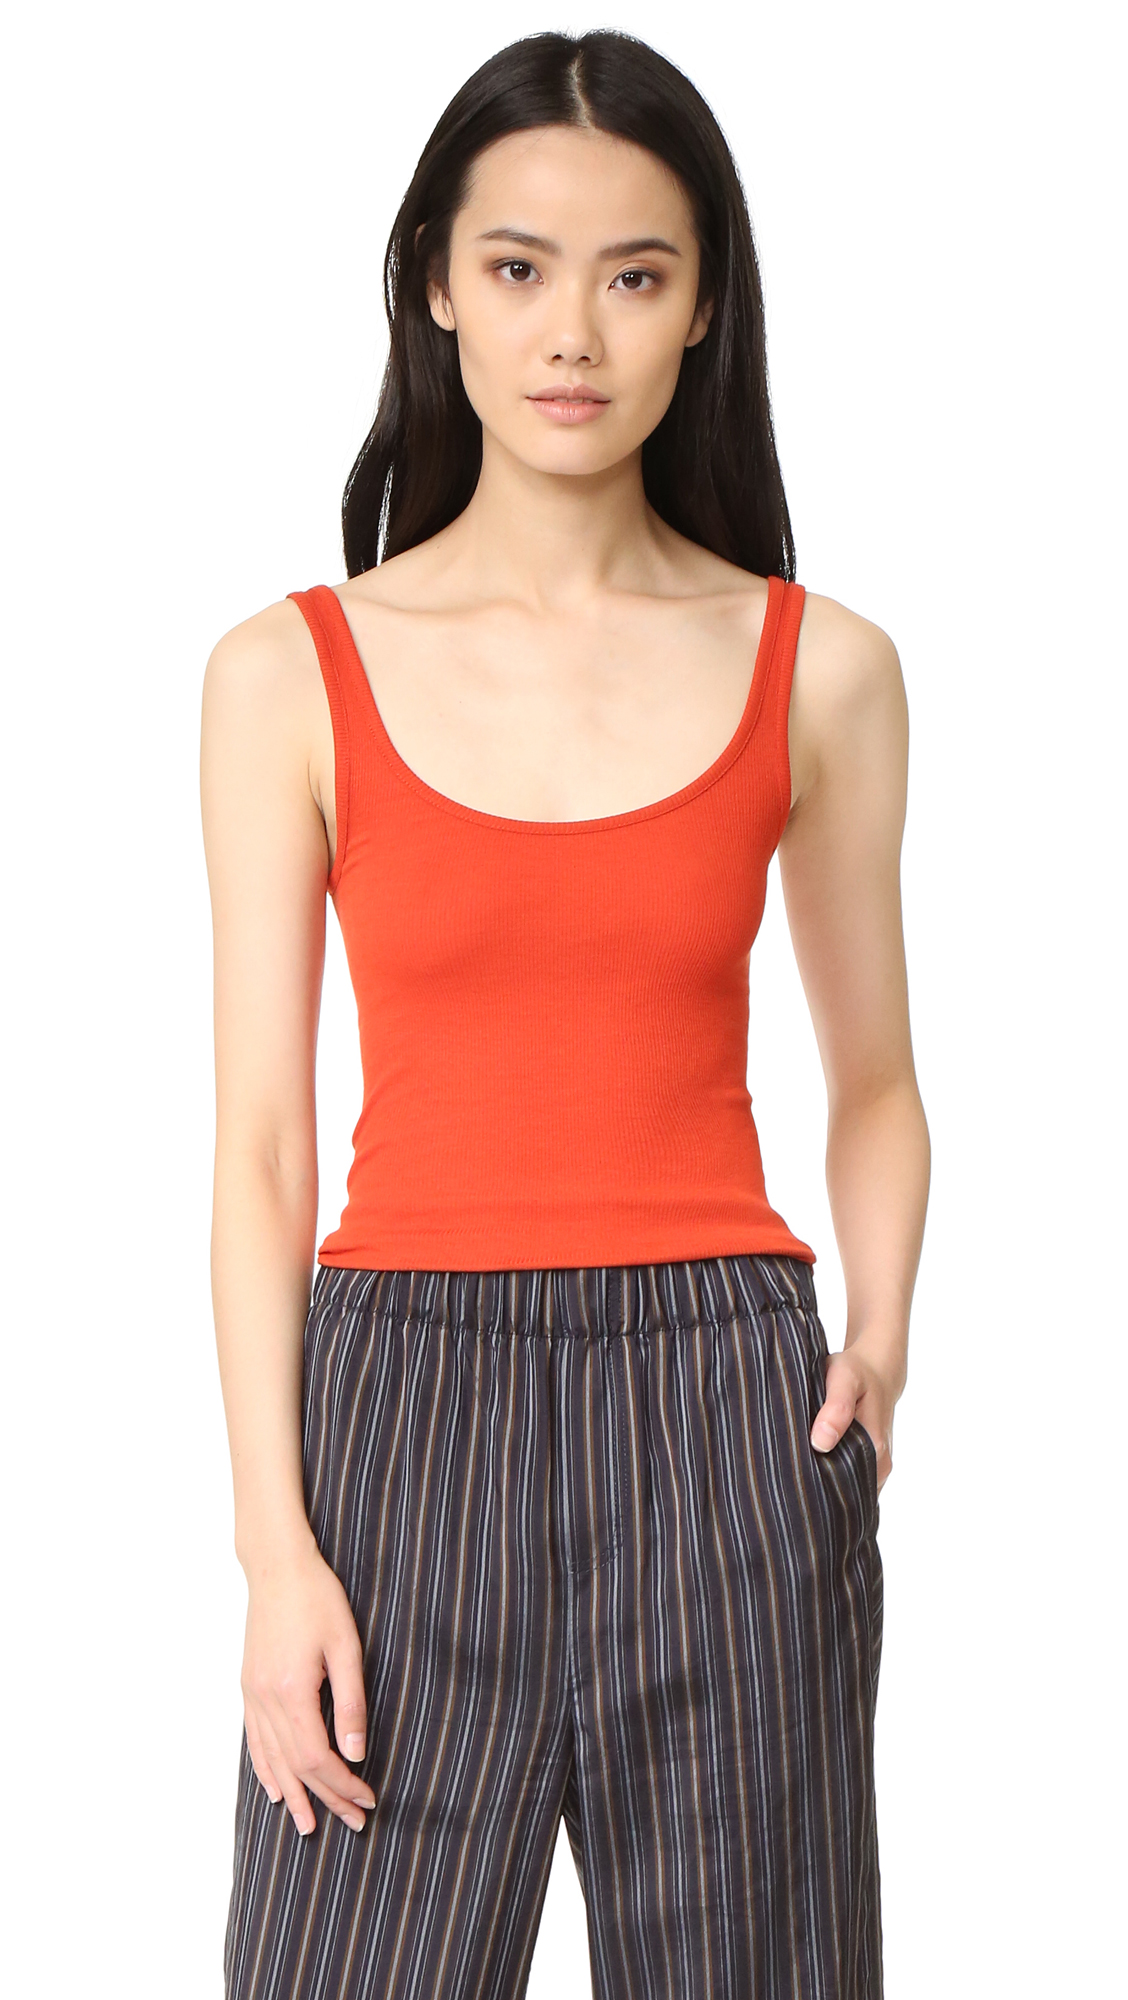 Vince Scoop Neck Tank - Orange Sunrise at Shopbop